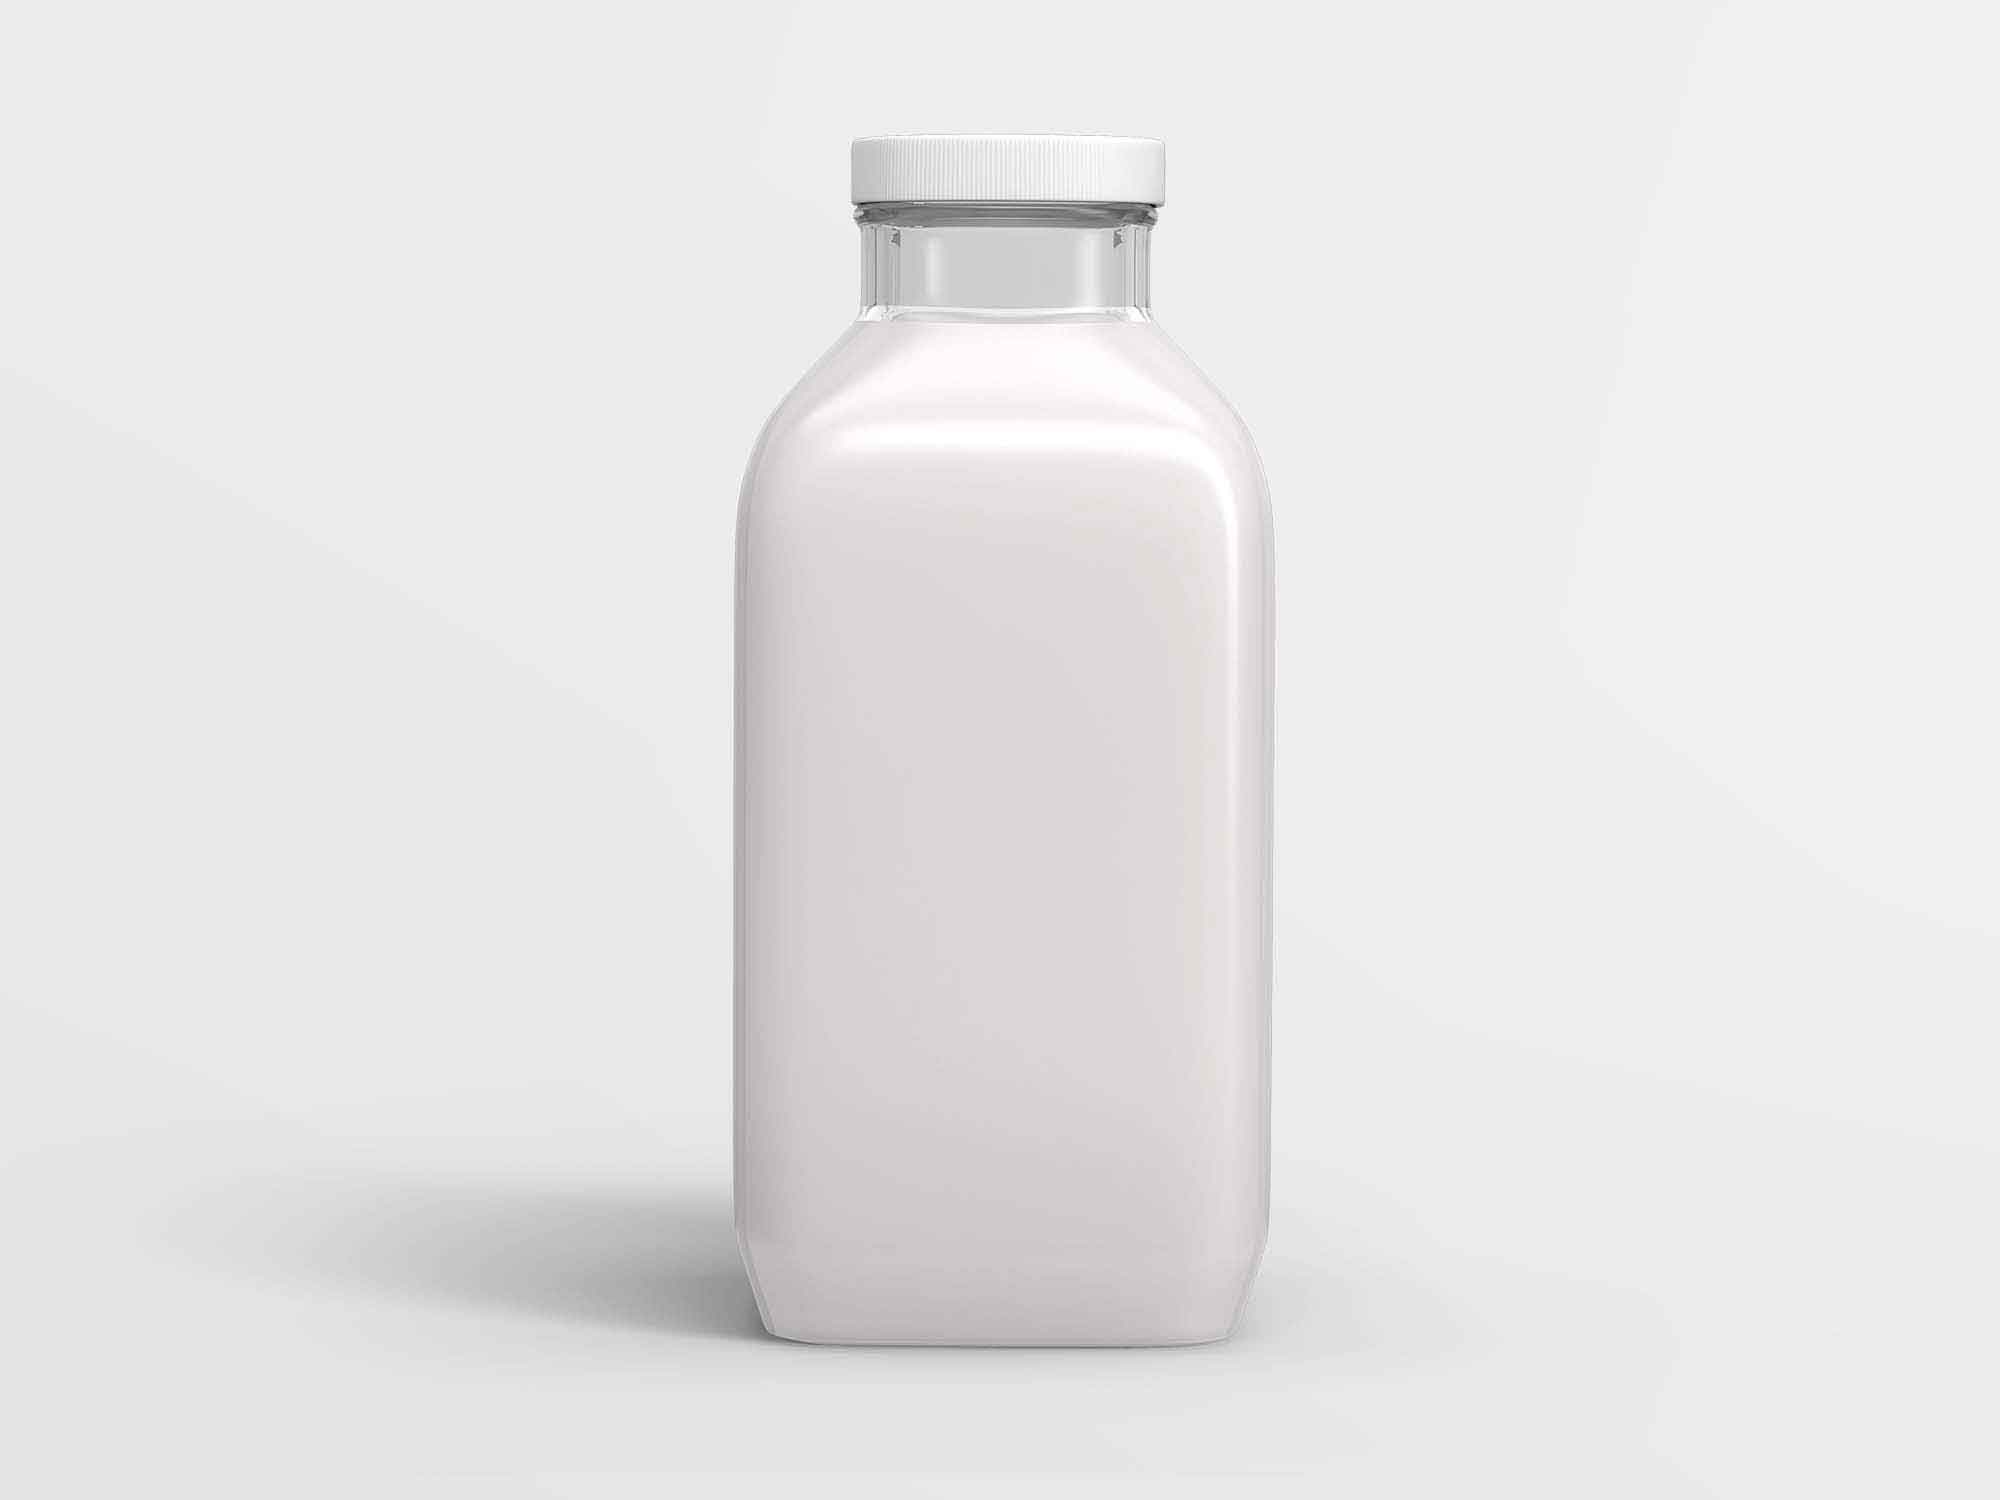 350ml Juice Bottle Mockup 2